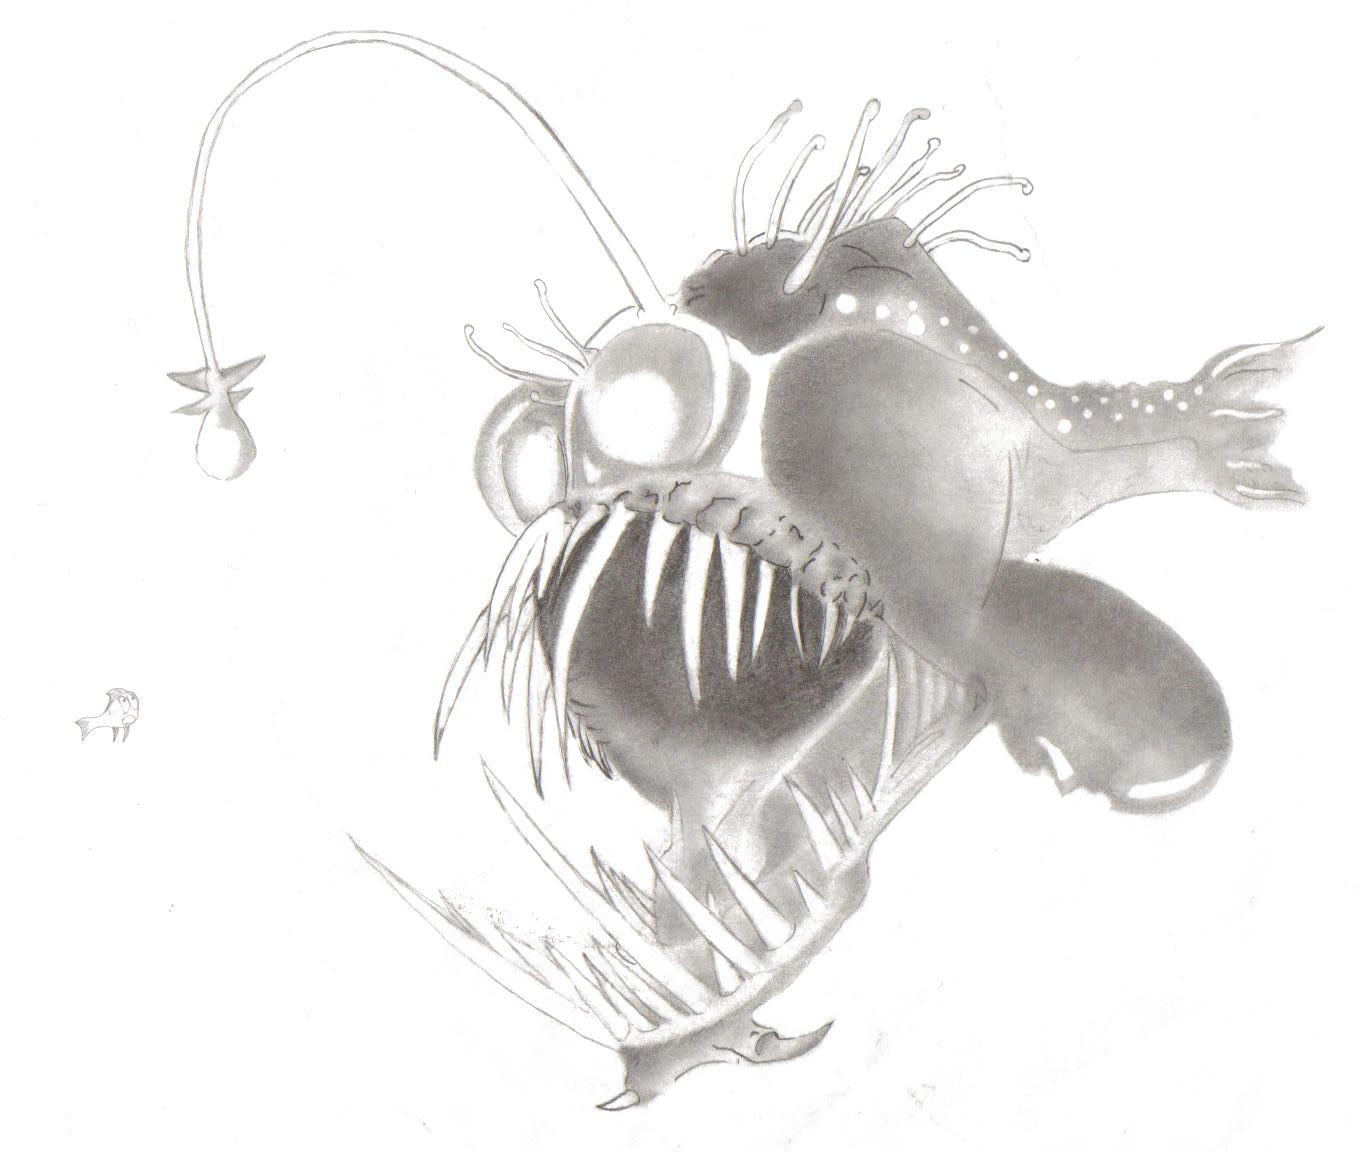 The Angler Fish By Sheeku On DeviantArt